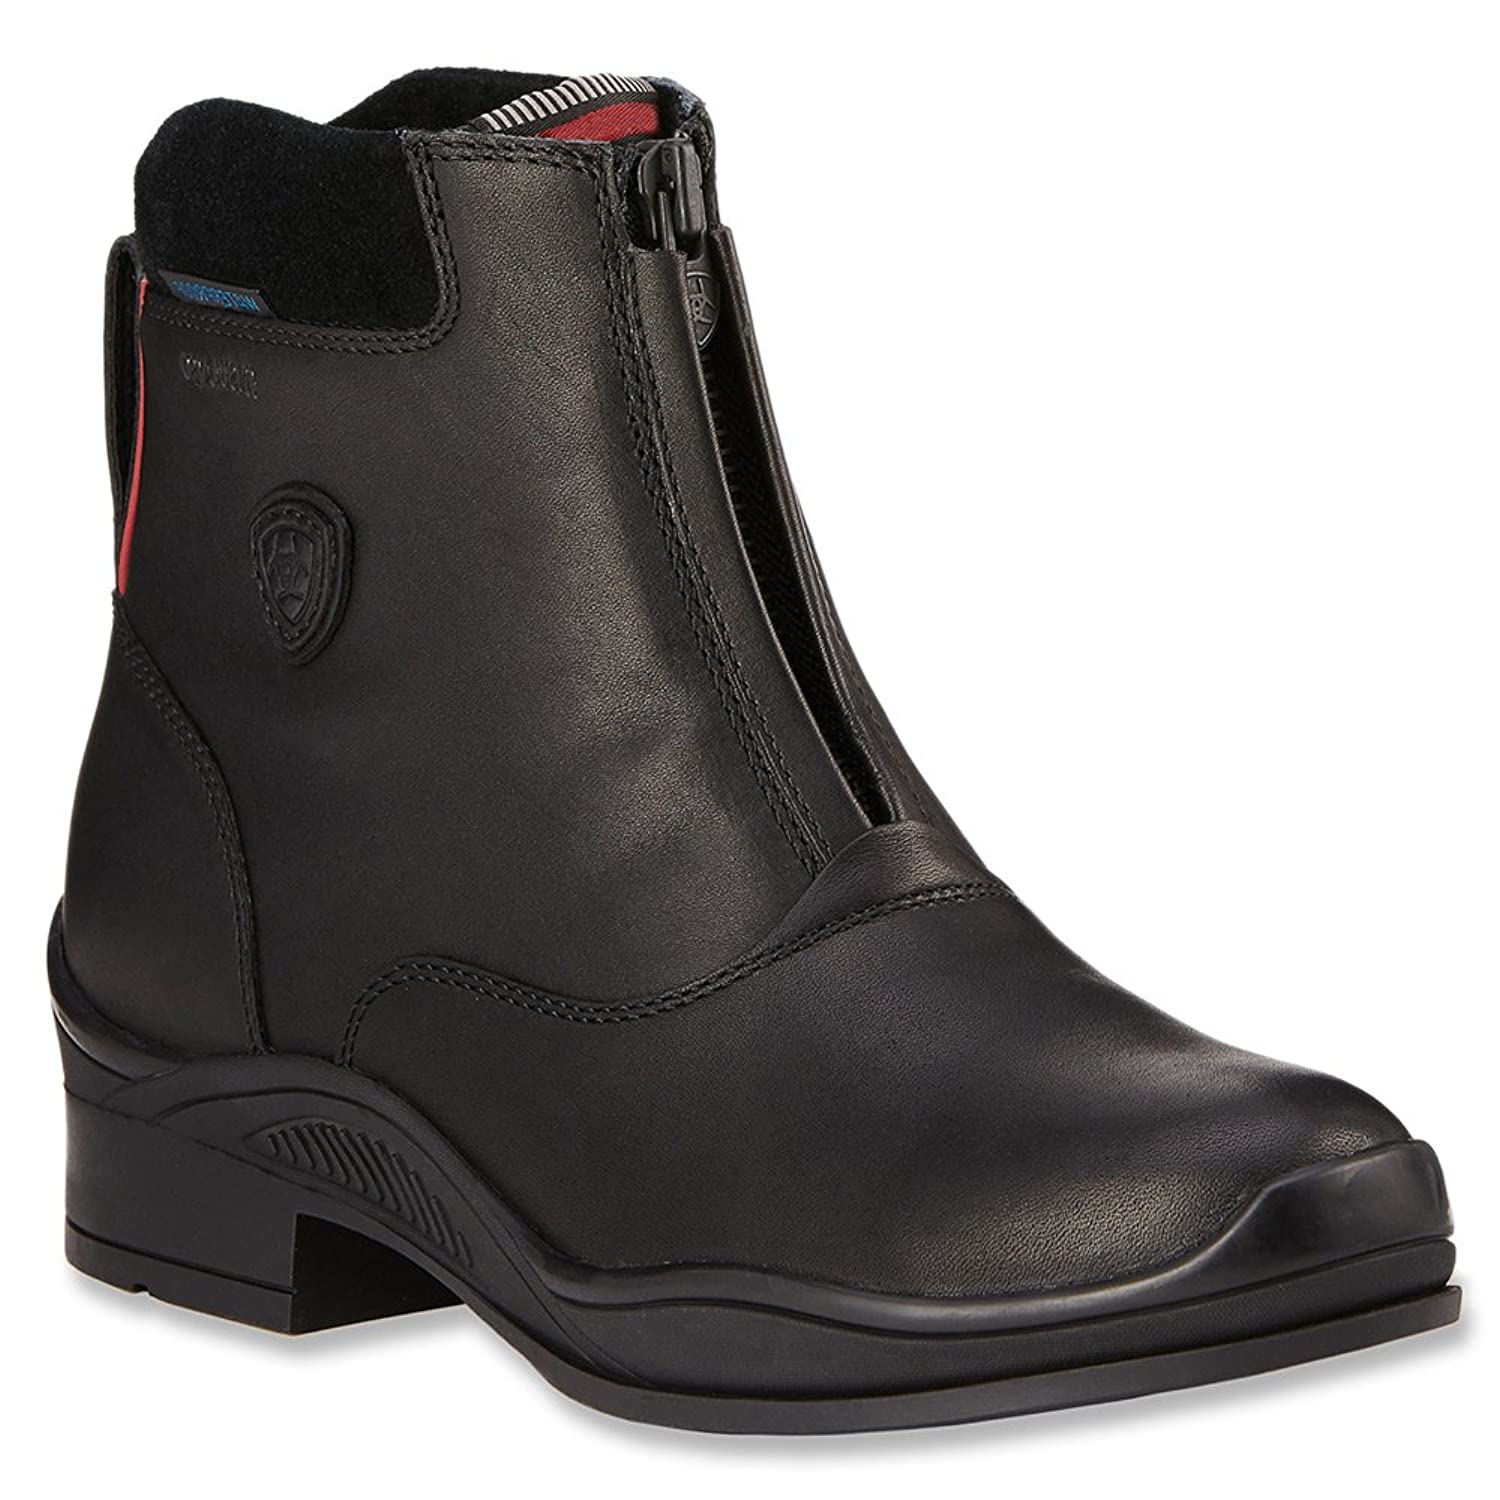 Ariat Womens Extreme Zip H2O Insulated Winter Riding